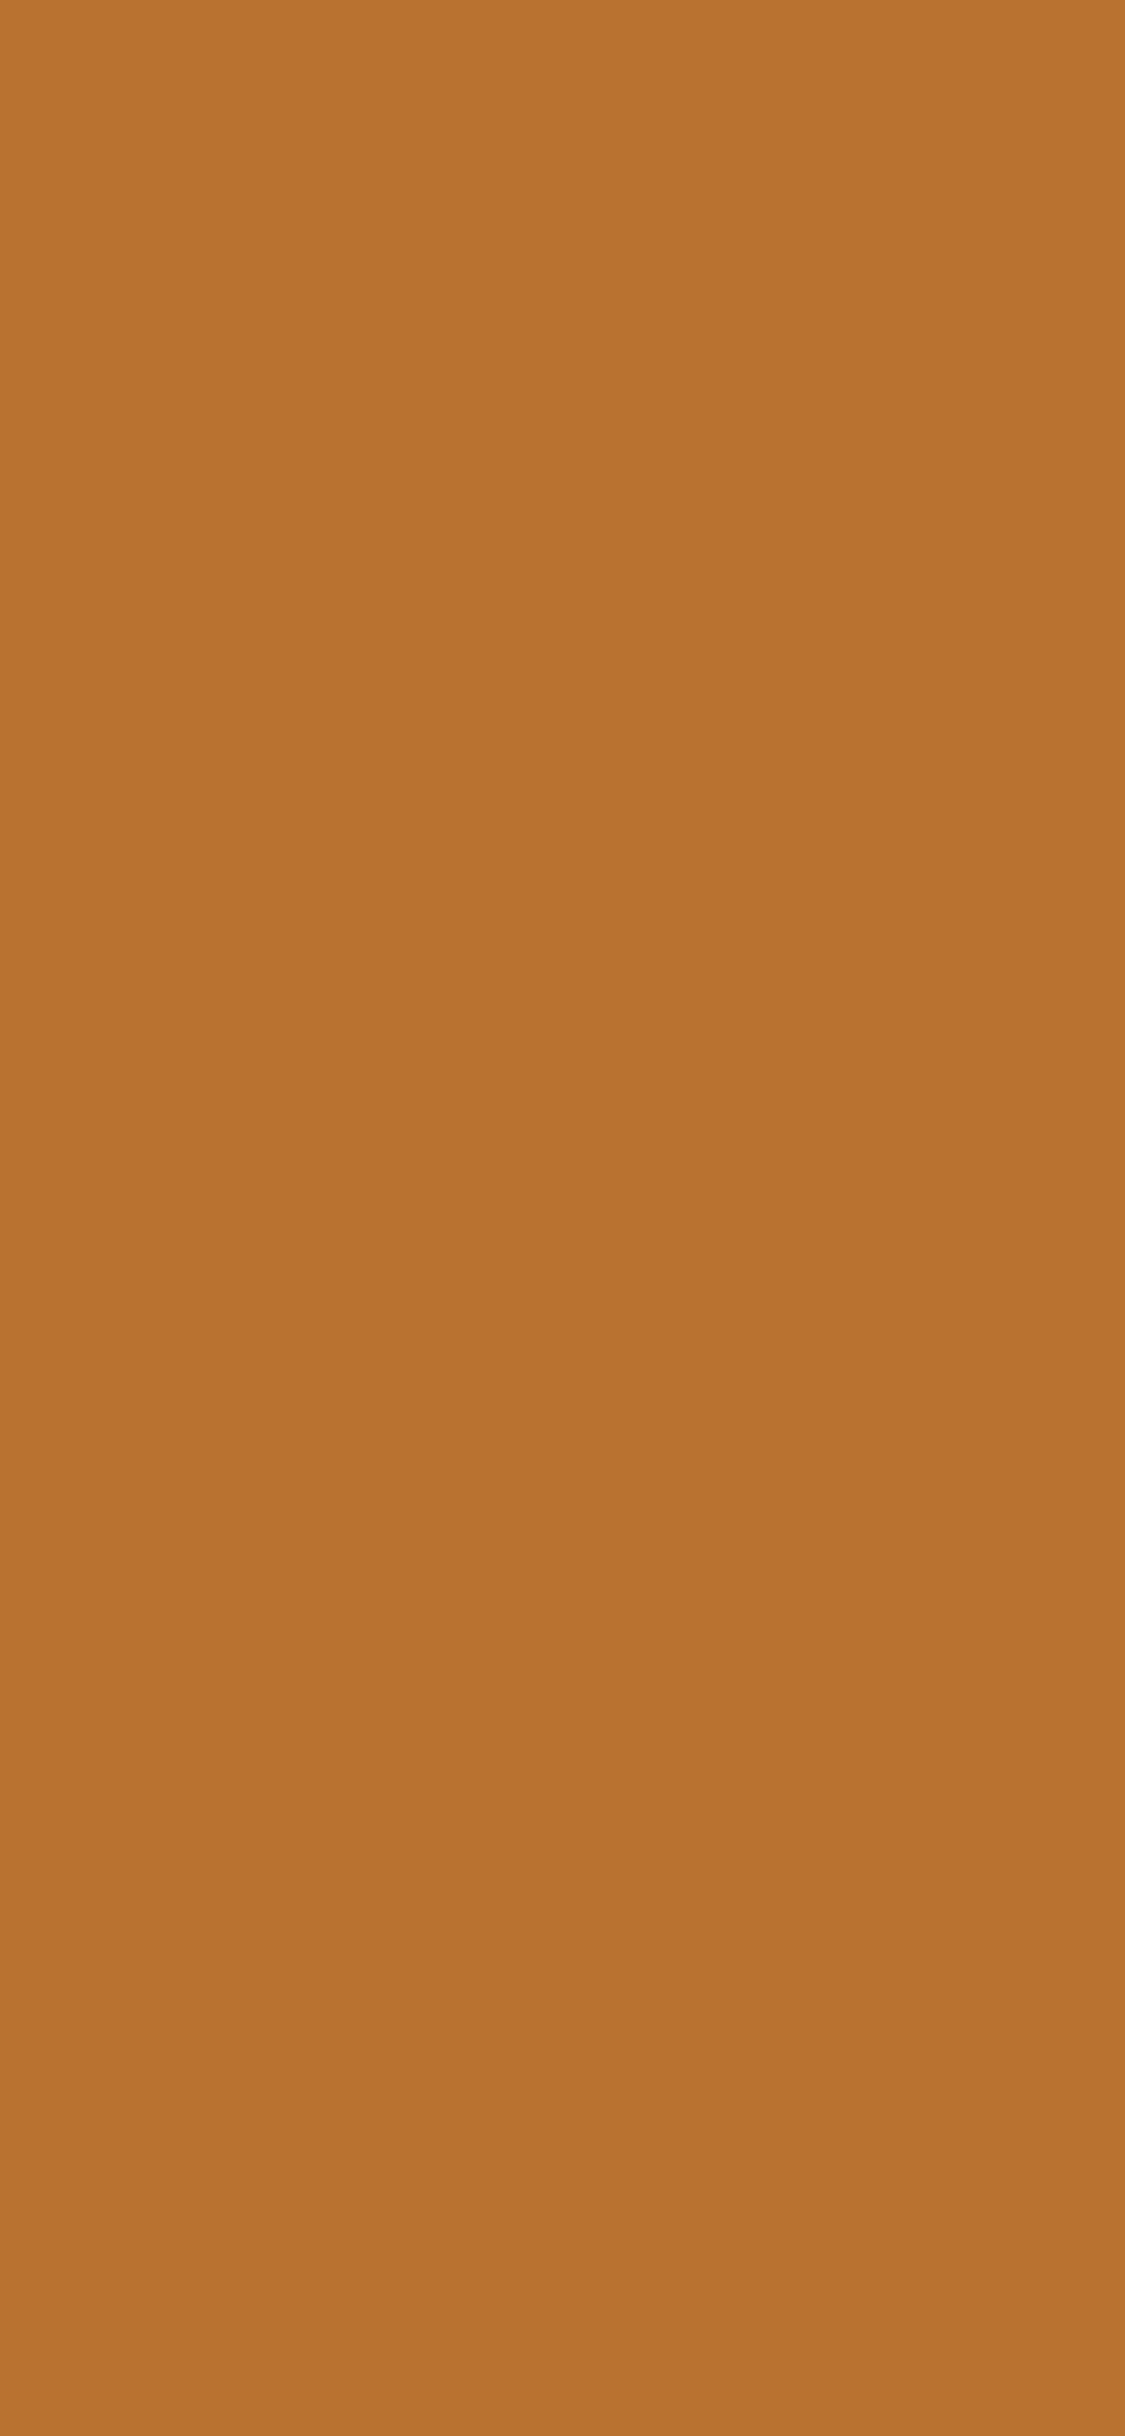 1125x2436 Copper Solid Color Background